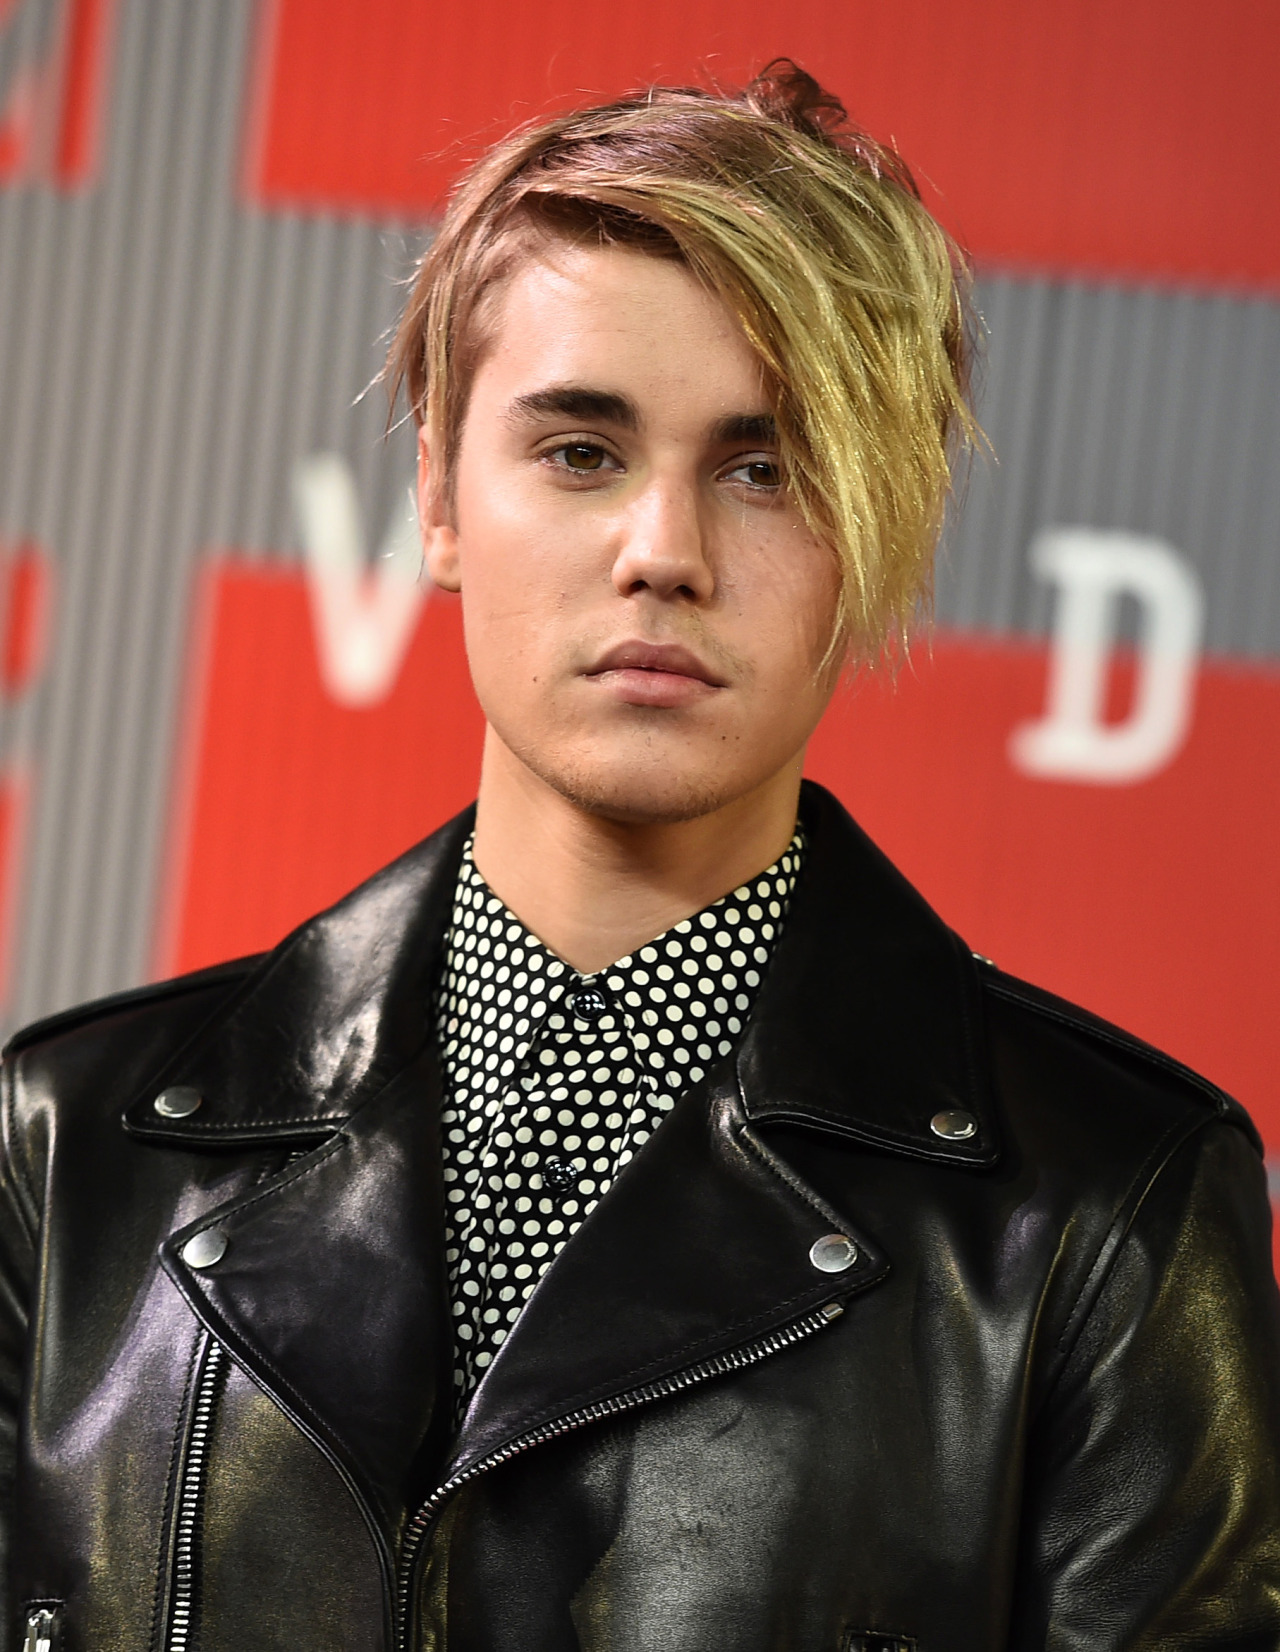 Justin Bieber in Leather Coat